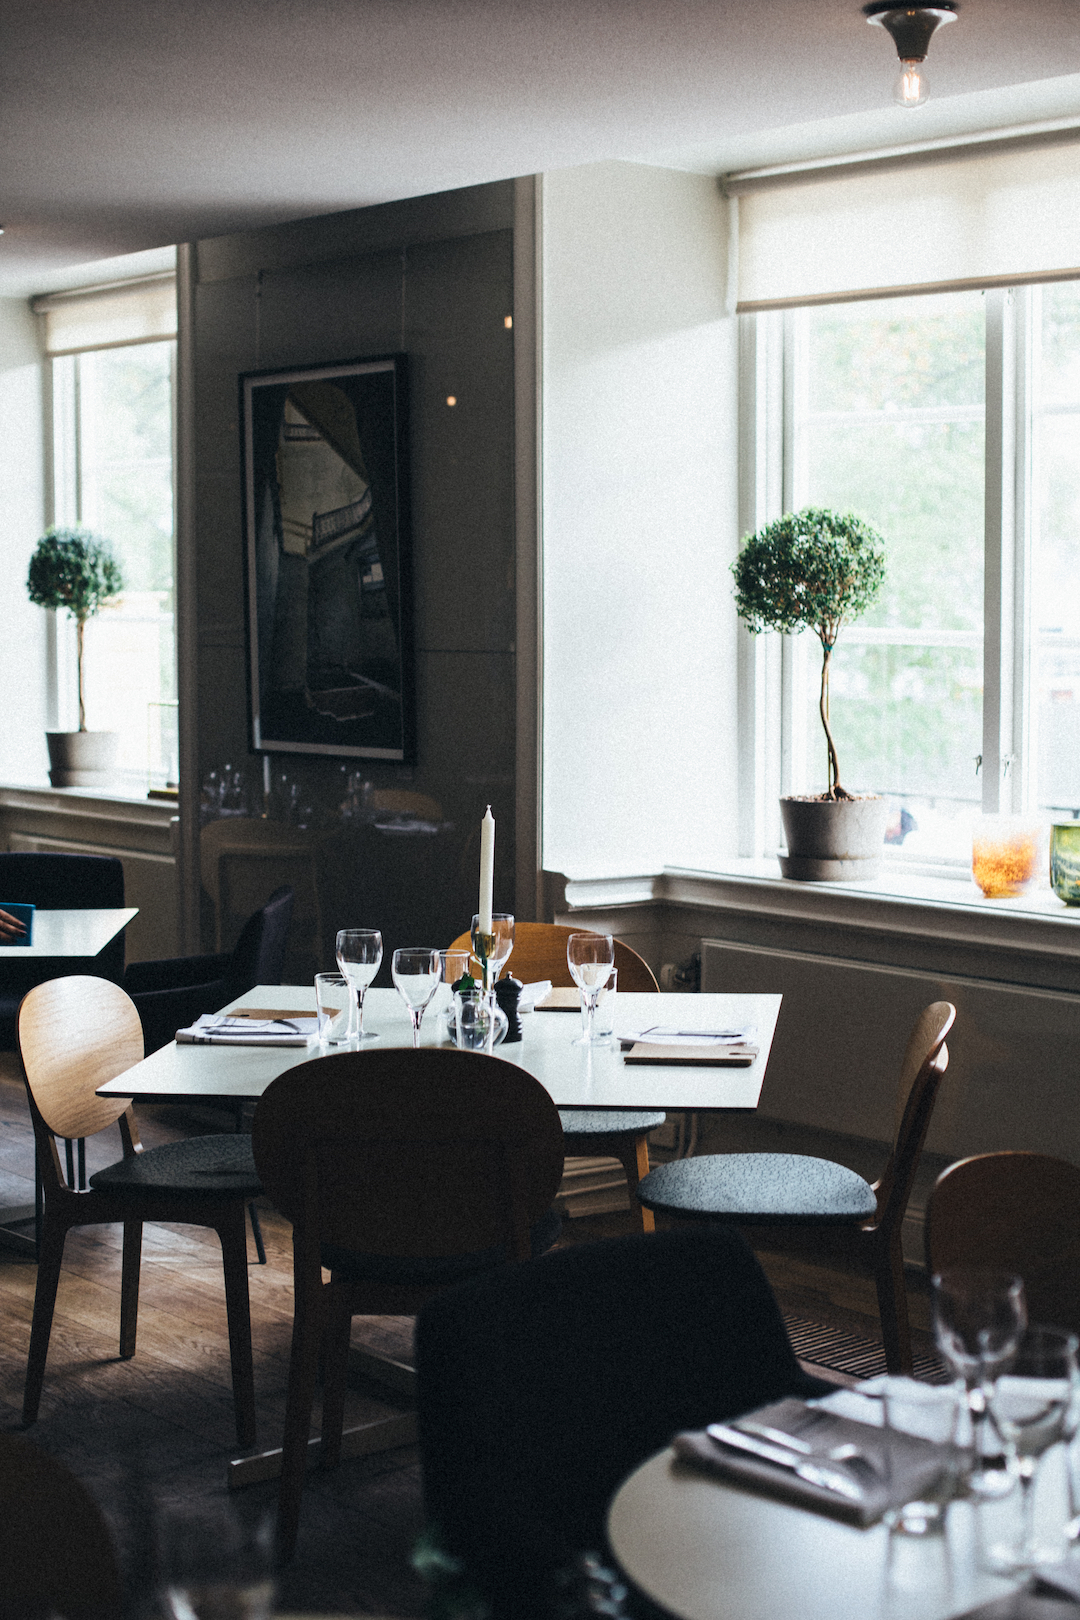 Restaurang Langa Raden (photo Louise Ljunggren)